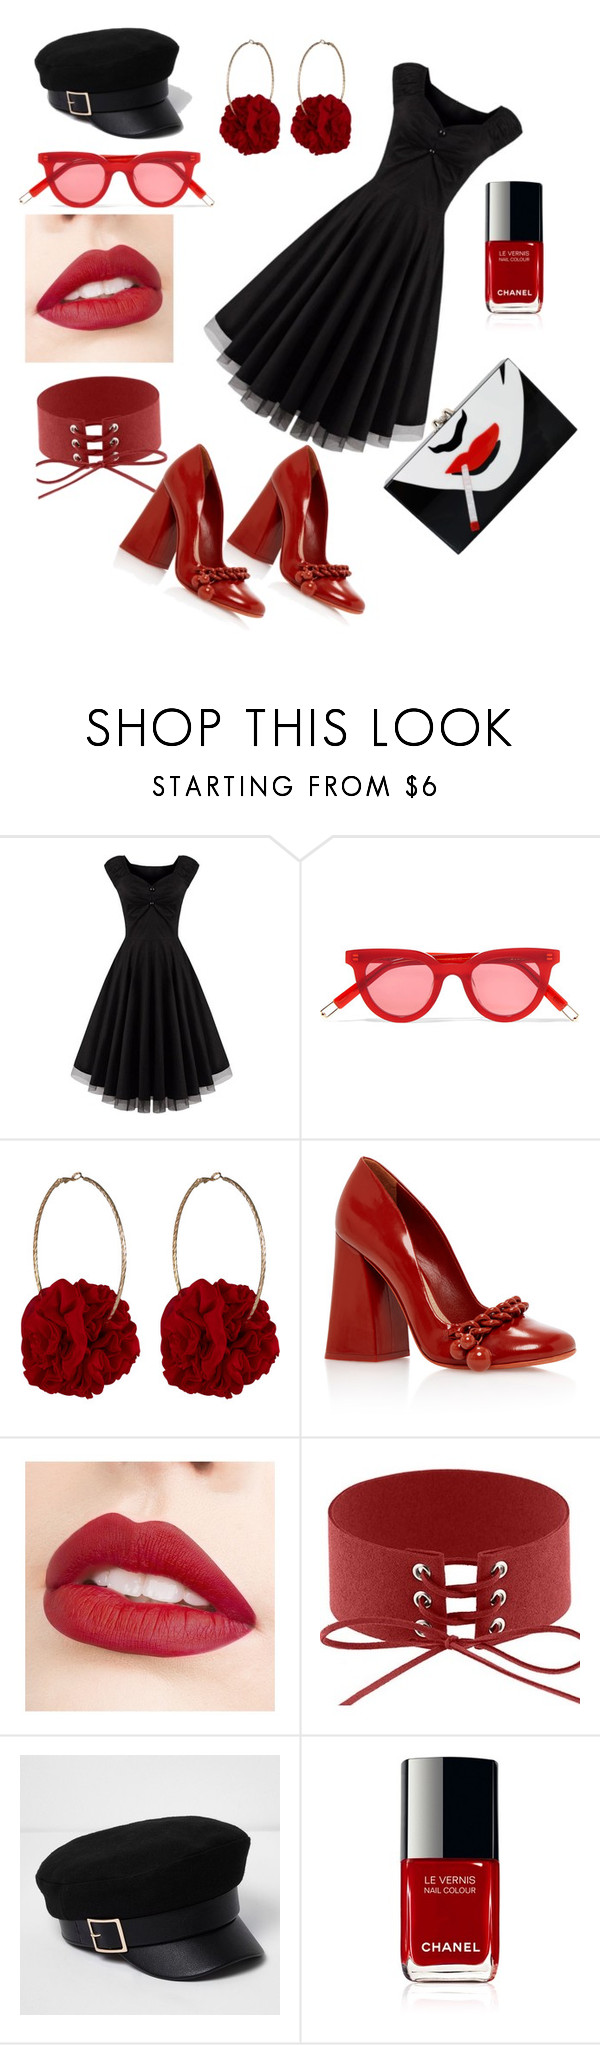 """red nd black"" by amalavijithomson ❤ liked on Polyvore featuring Gentle Monster, Vjera Vilicnik, Jouer, River Island and Charlotte Olympia"